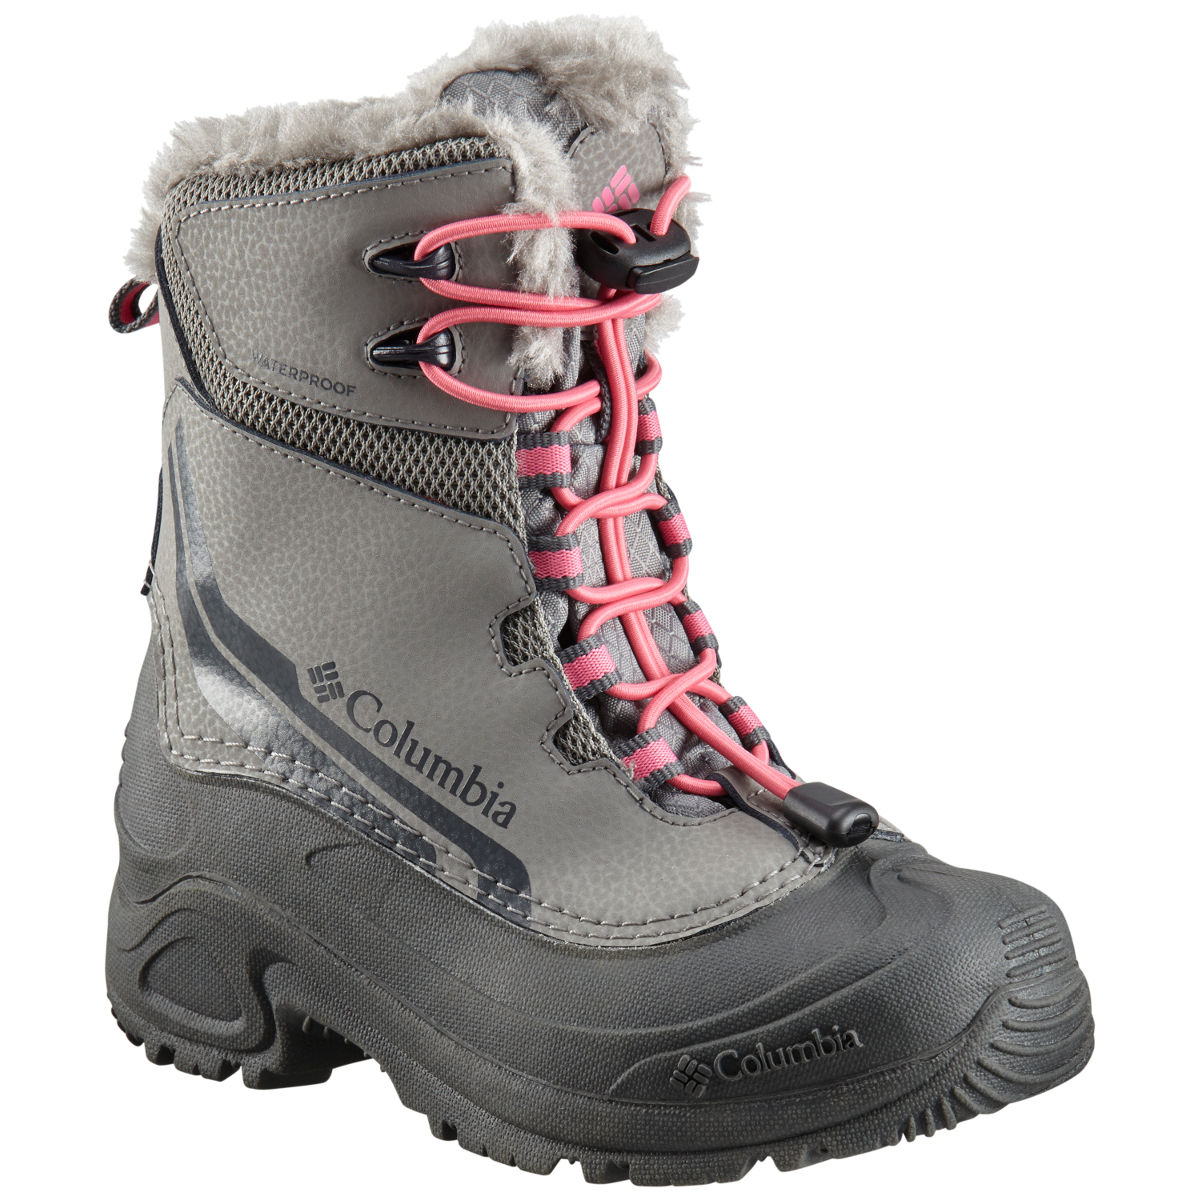 Columbia Girls' Bugaboot Iv Waterproof Insulated Storm Boots - Black, 3